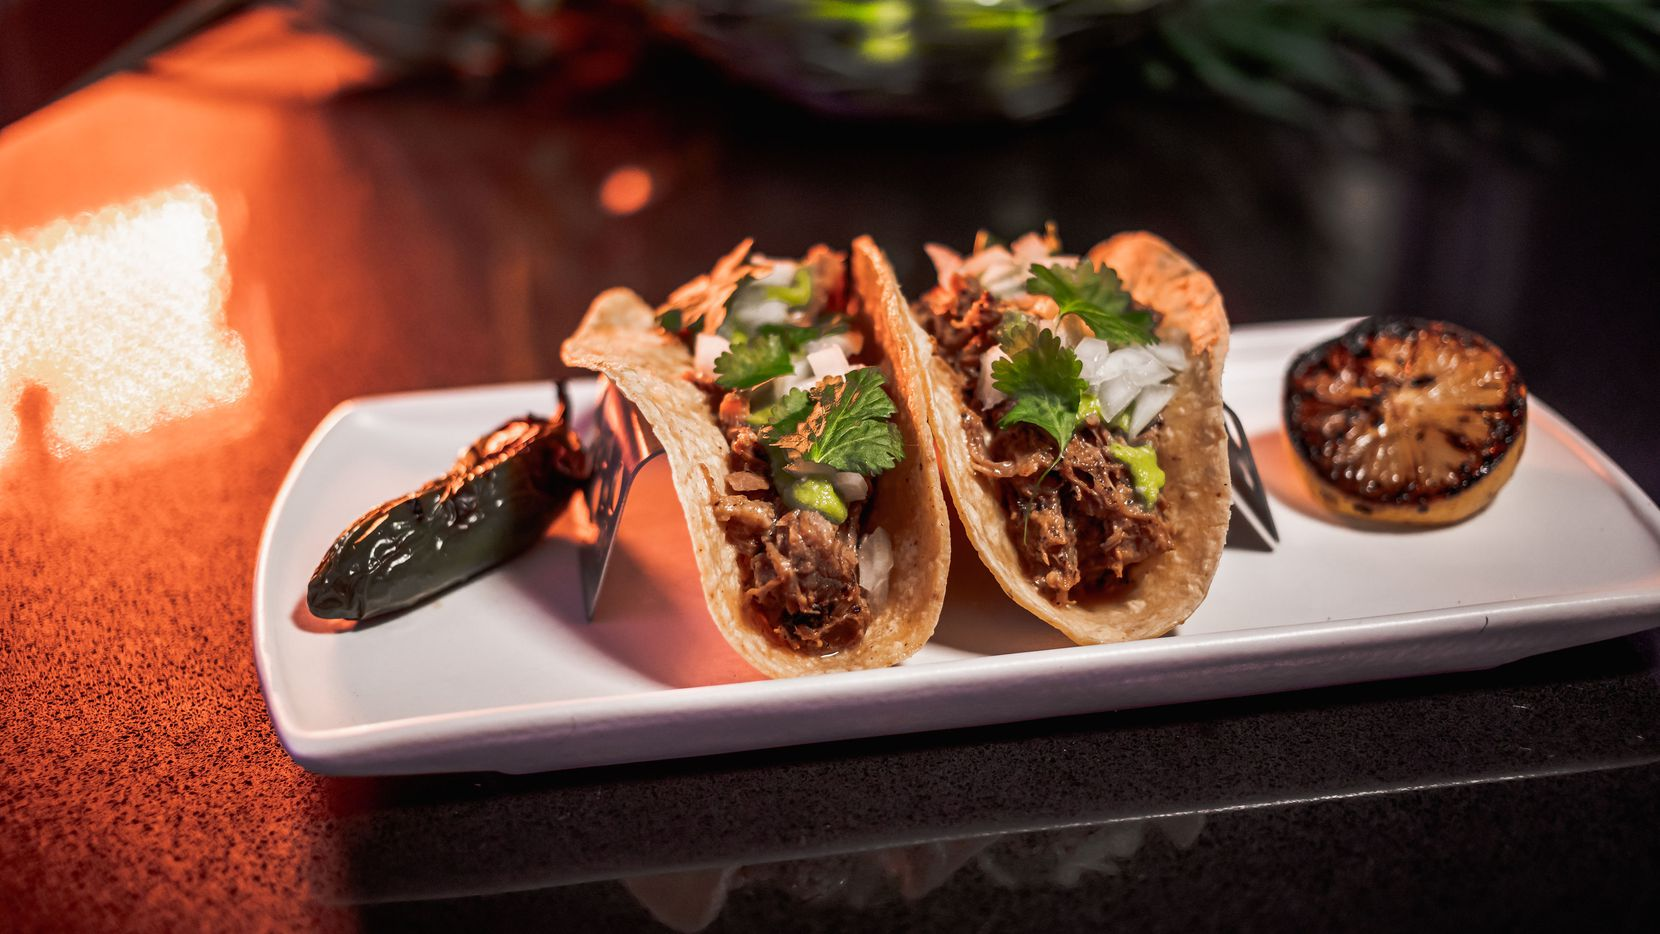 Chido Taco Lounge will sell carnitas tacos, one of owner Blaine McGowan's favorite dishes. The restaurant is expected to open March 12, 2021.